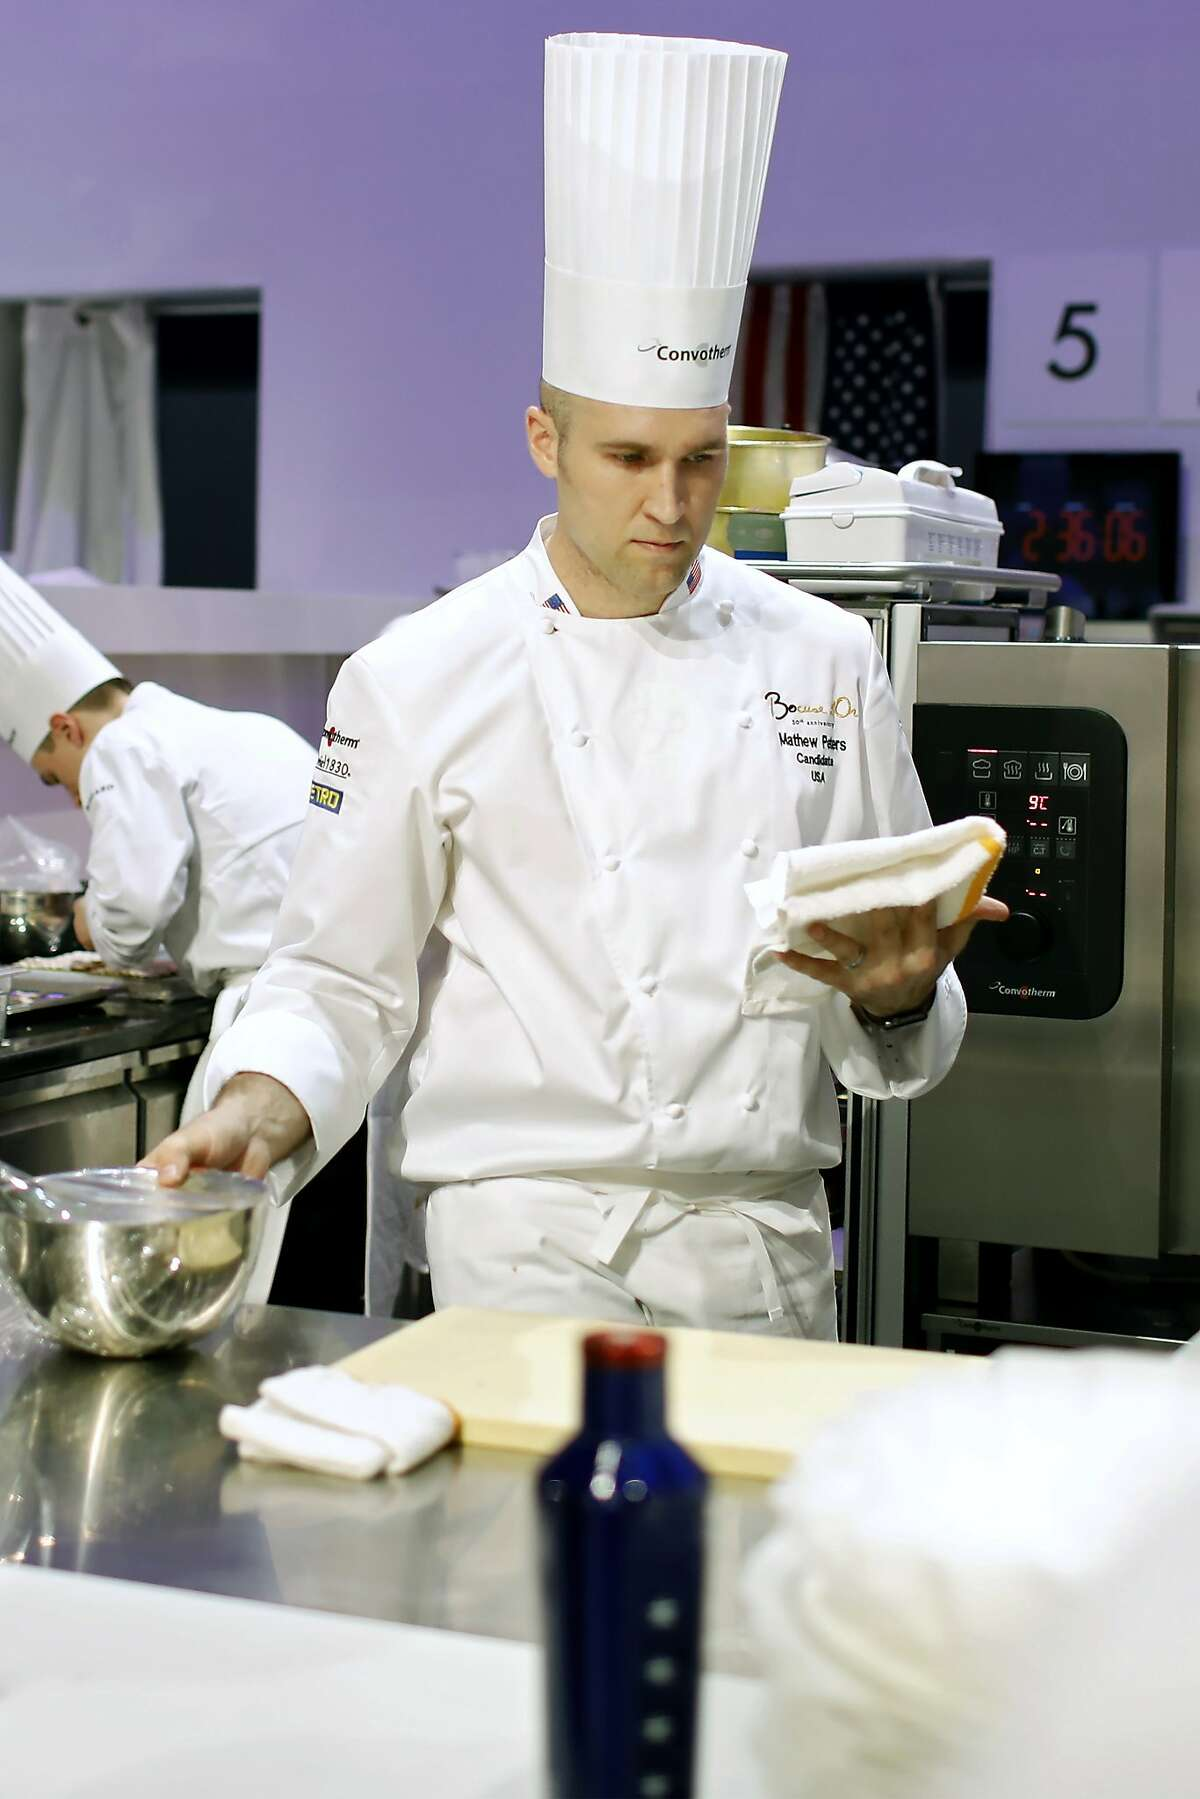 Mathew Peters, of USA, prepares food during the